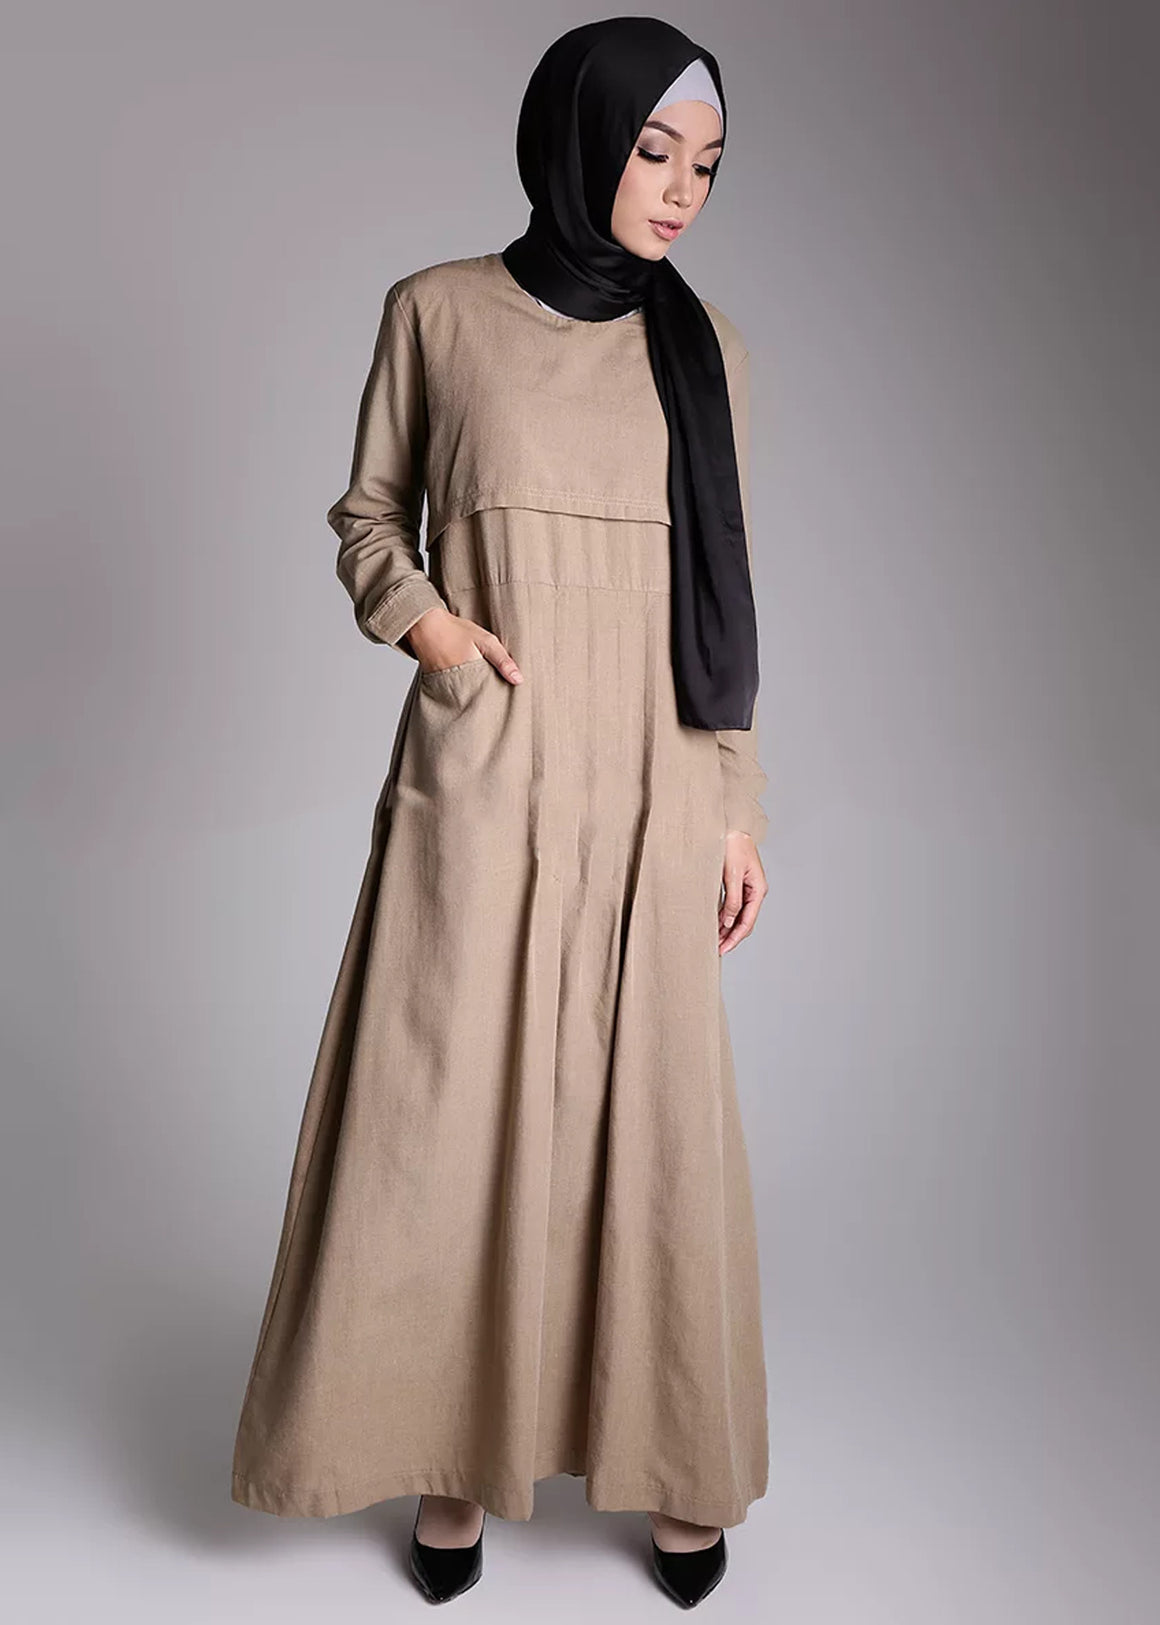 Basaya Dress Beige - eclemix